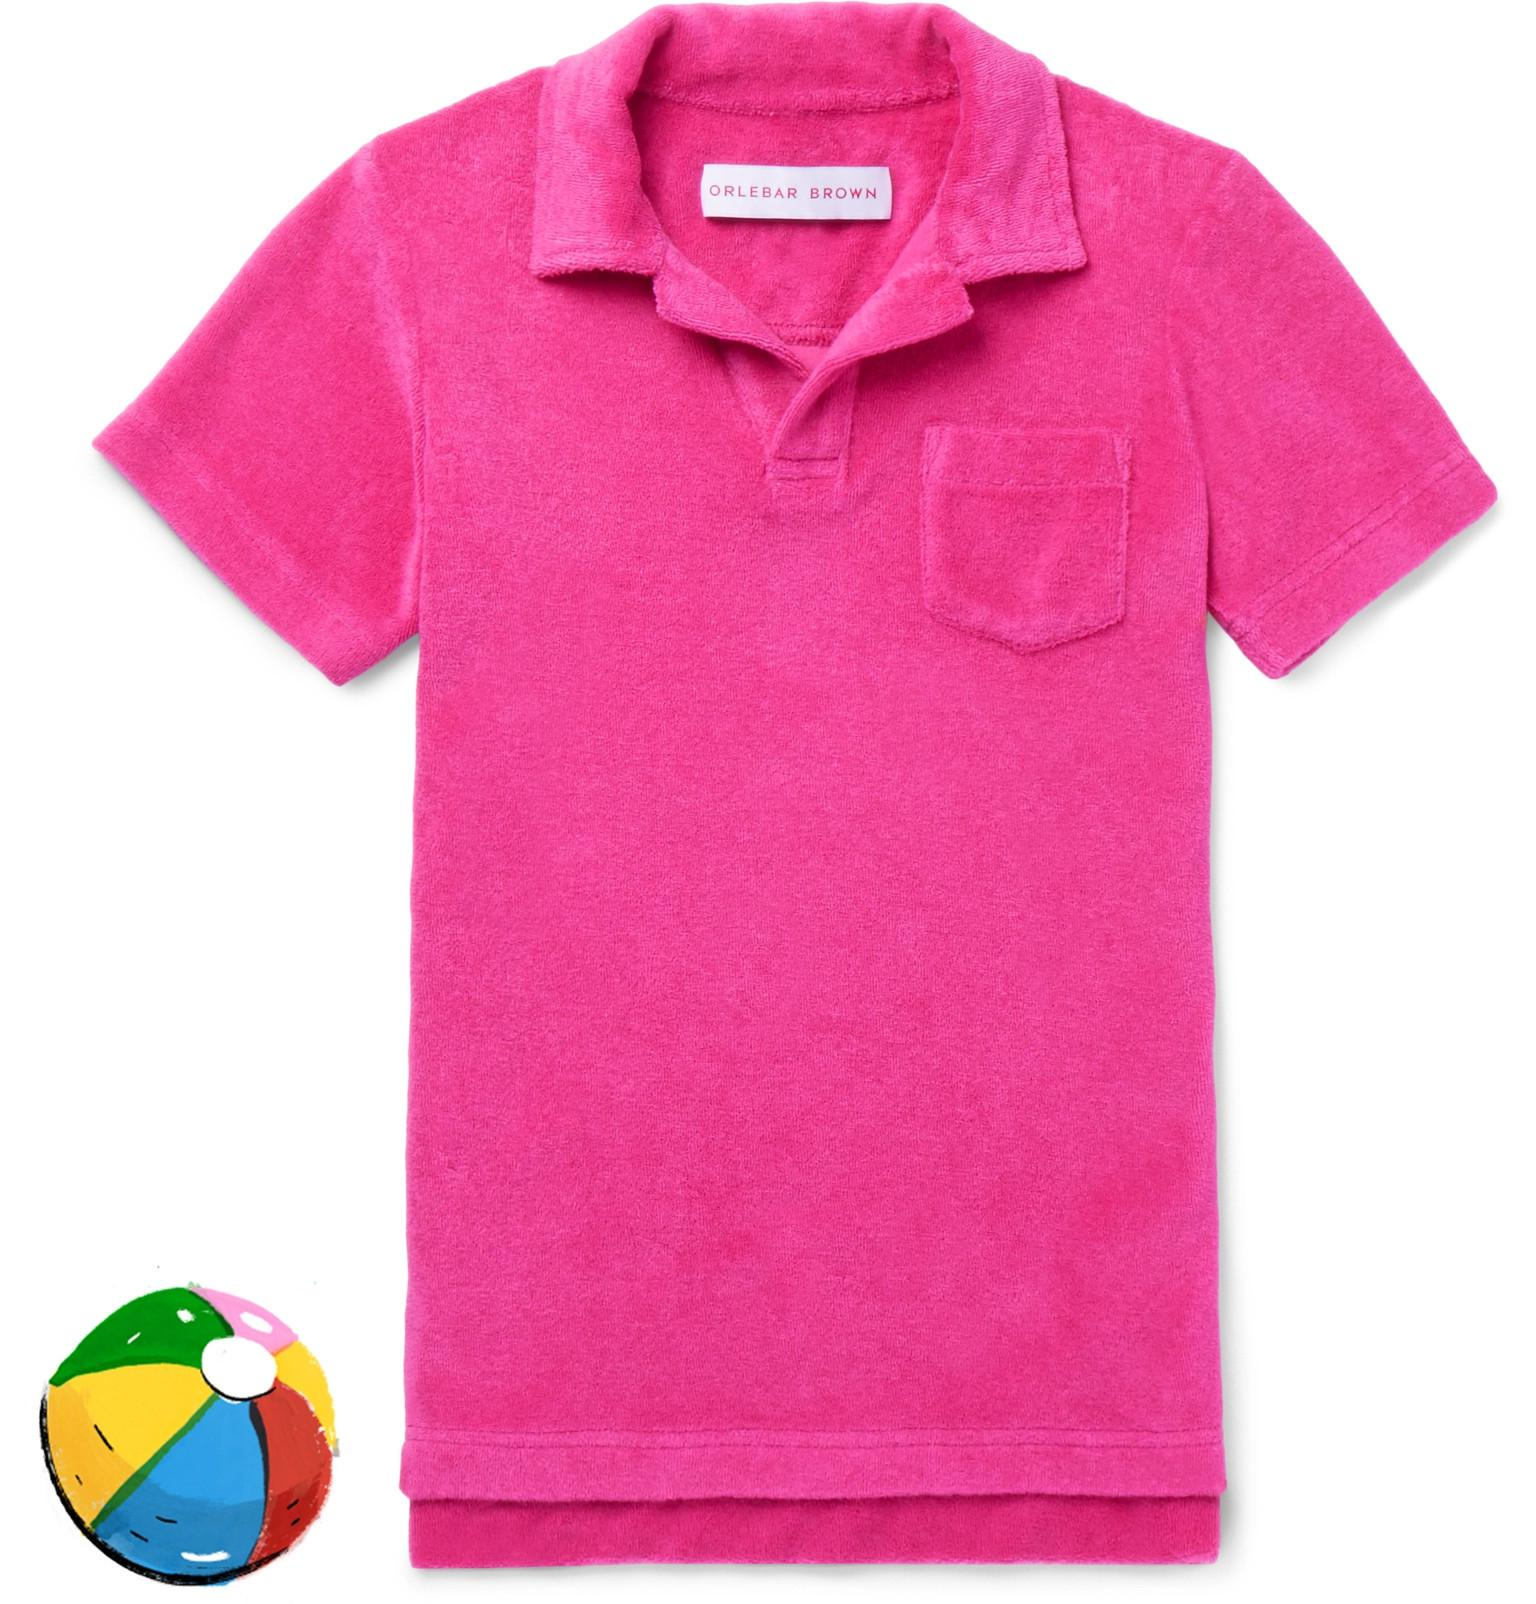 Orlebar Brown Boys Ages 4 - 12 Digby Striped Cotton-terry Polo Shirt - Navy iYfCy